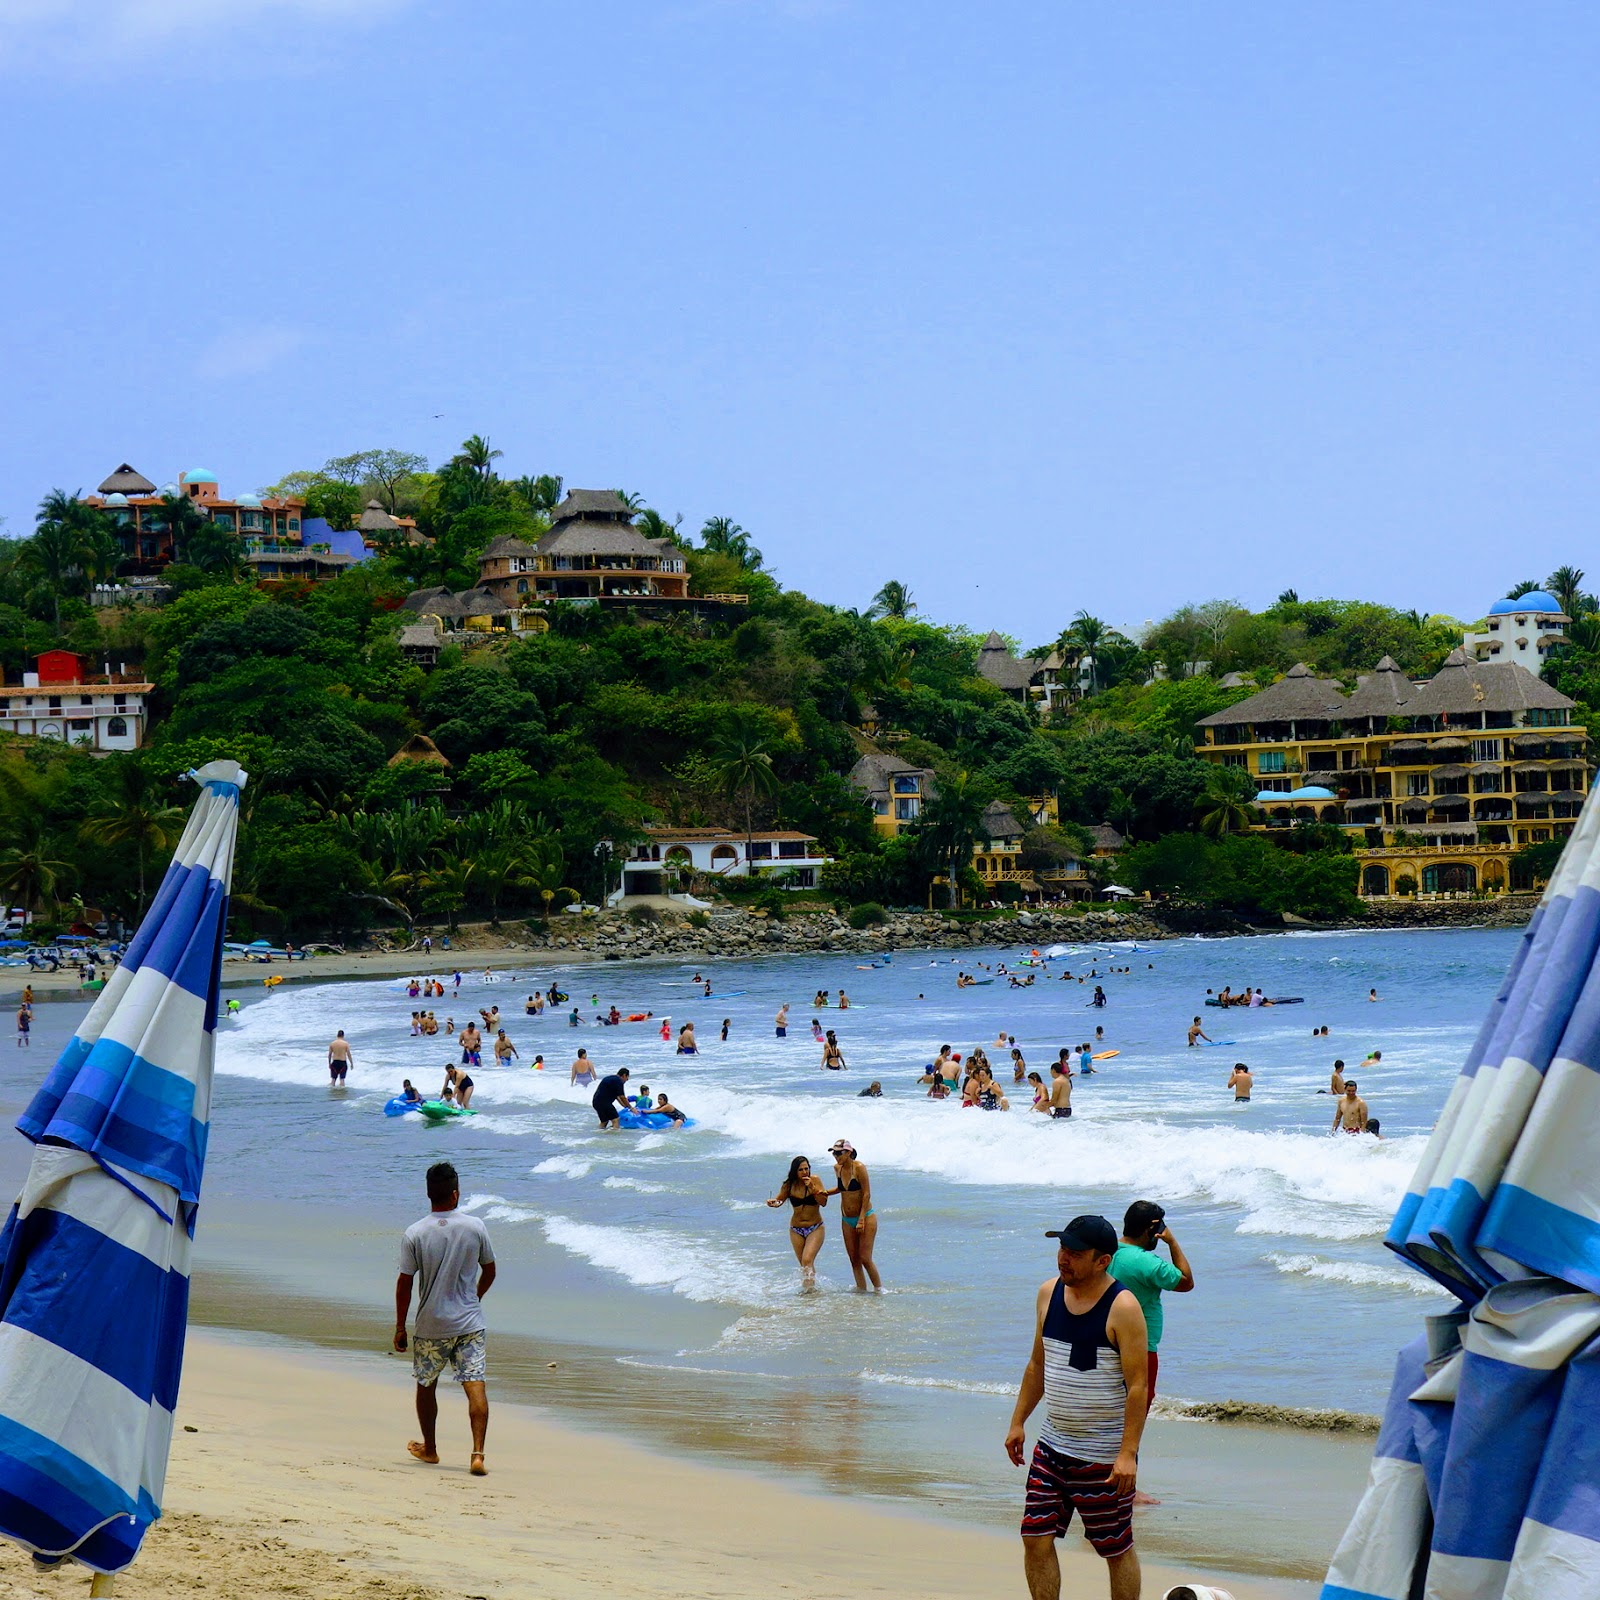 Travel, Sayulita, Pueblo Magico, Visit Mexico, Featured, Hippie Town, Nayarit, Bachelorette trip ideas,